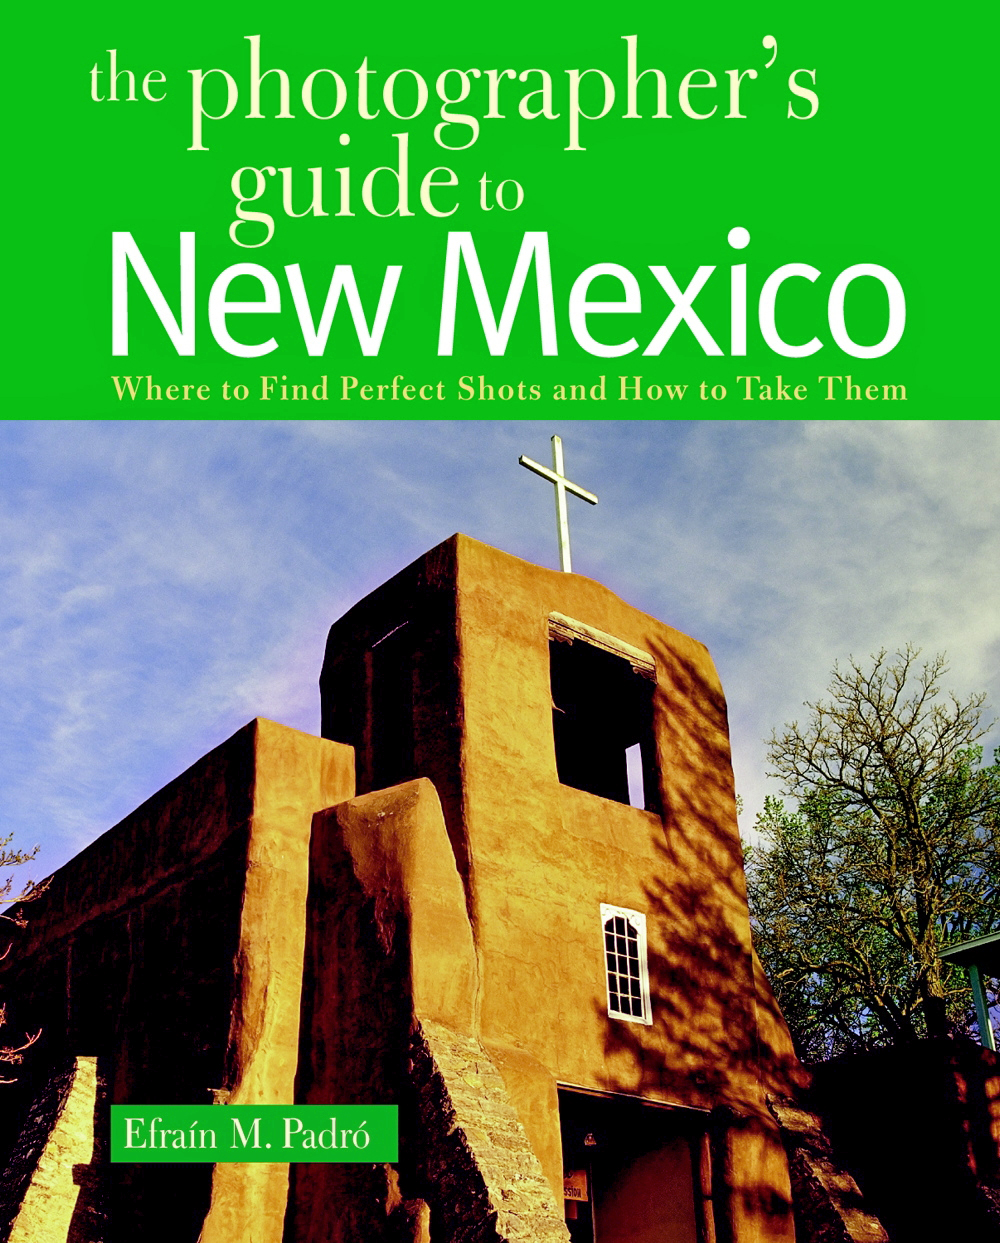 Cover, The Photographer's Guide to New Mexico (San Miguel Mission, Santa Fe, NM)